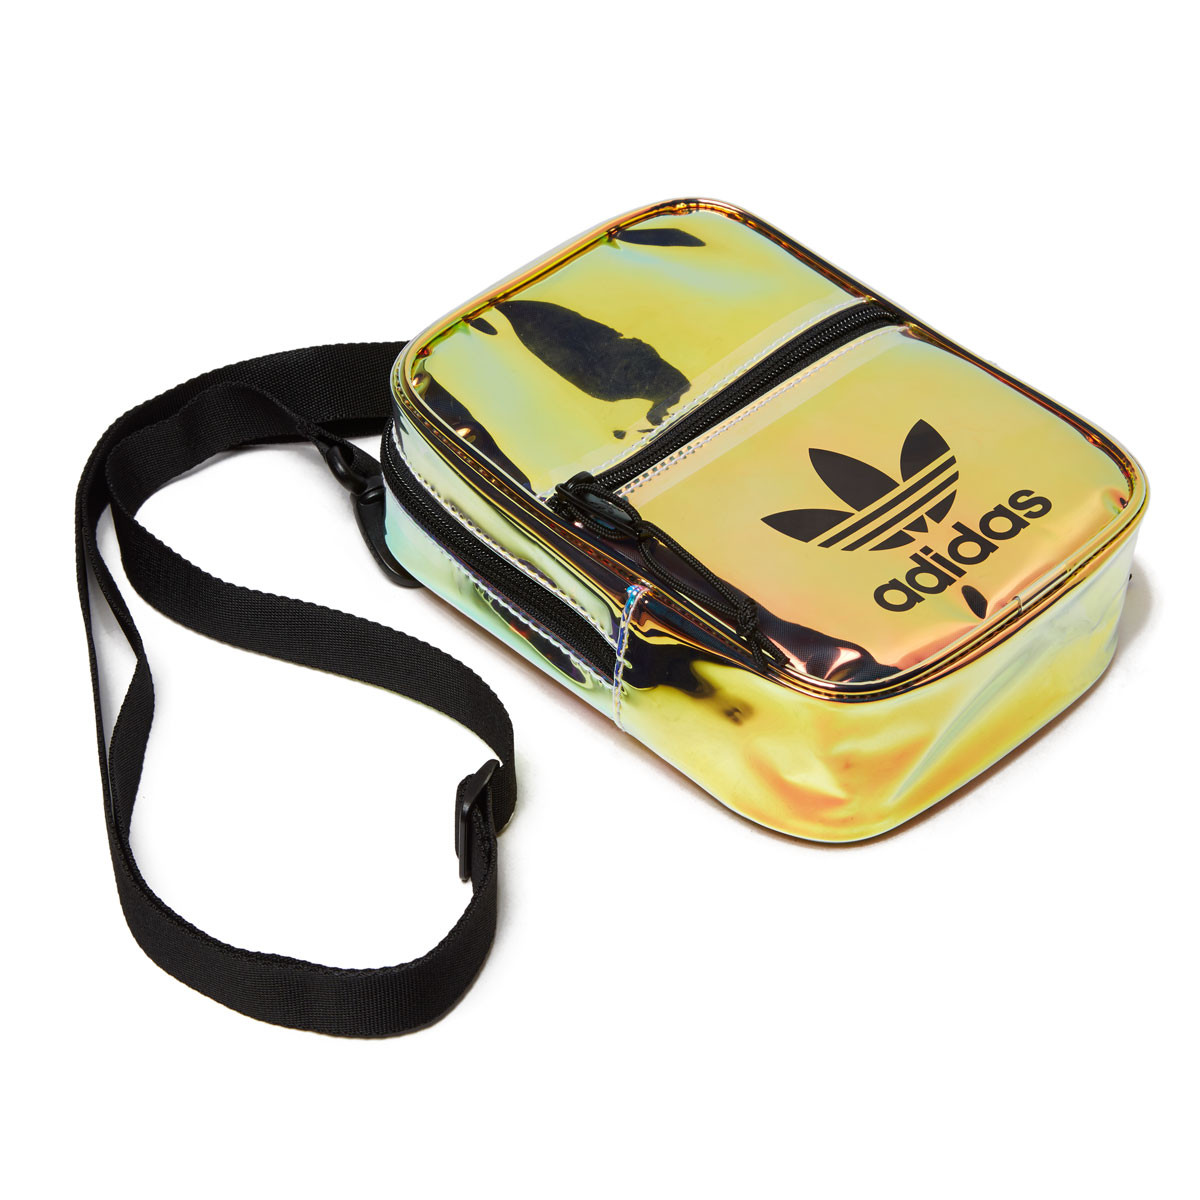 0ee8c0c7e Adidas Originals Shoulder Strap Iridescent Festival Bag - Radiant ...